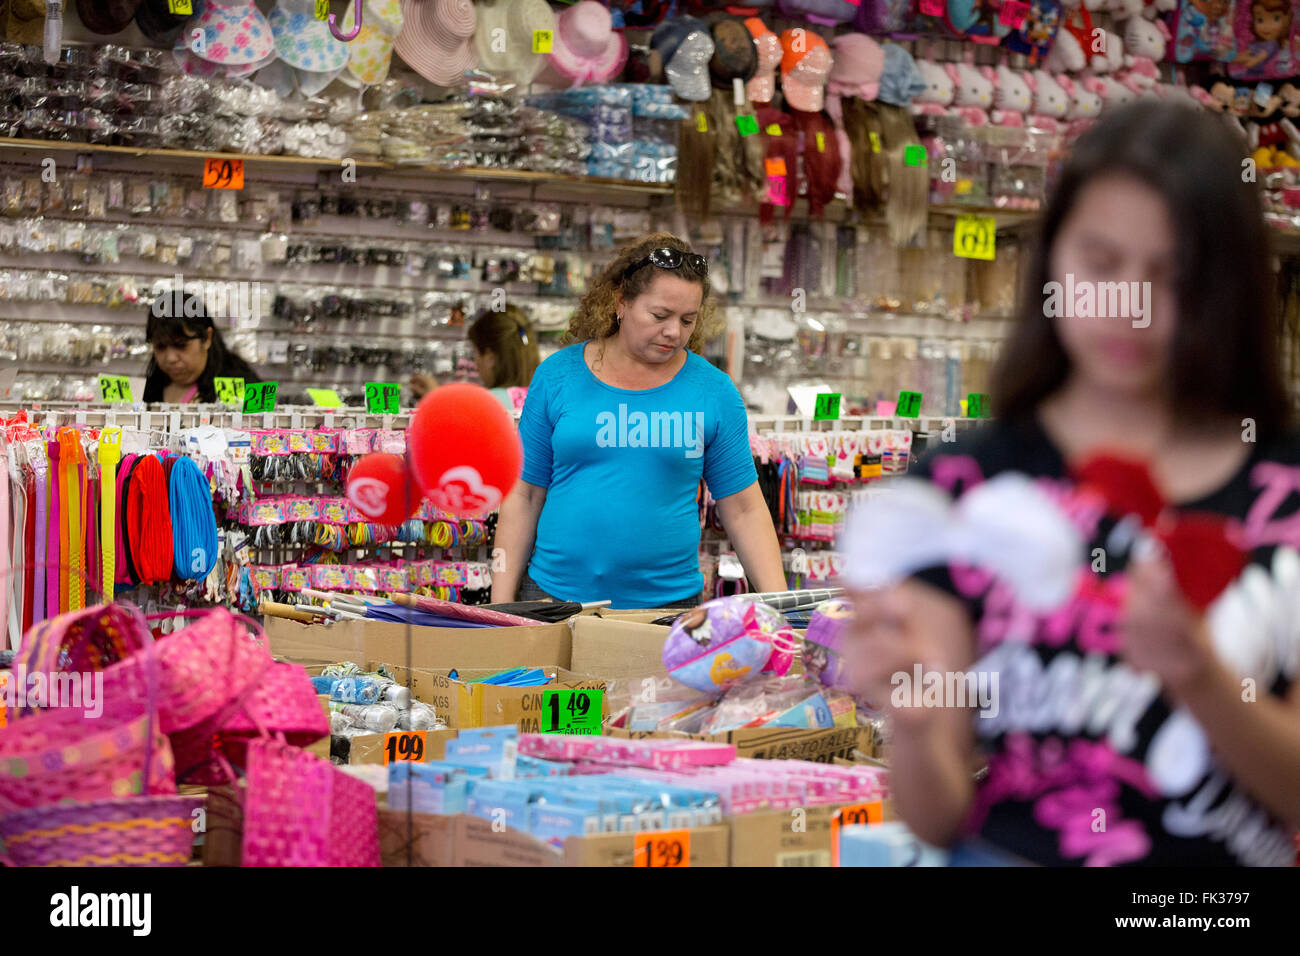 People shopping in a discount store in Calexico, California on the border with Mexico - Stock Image